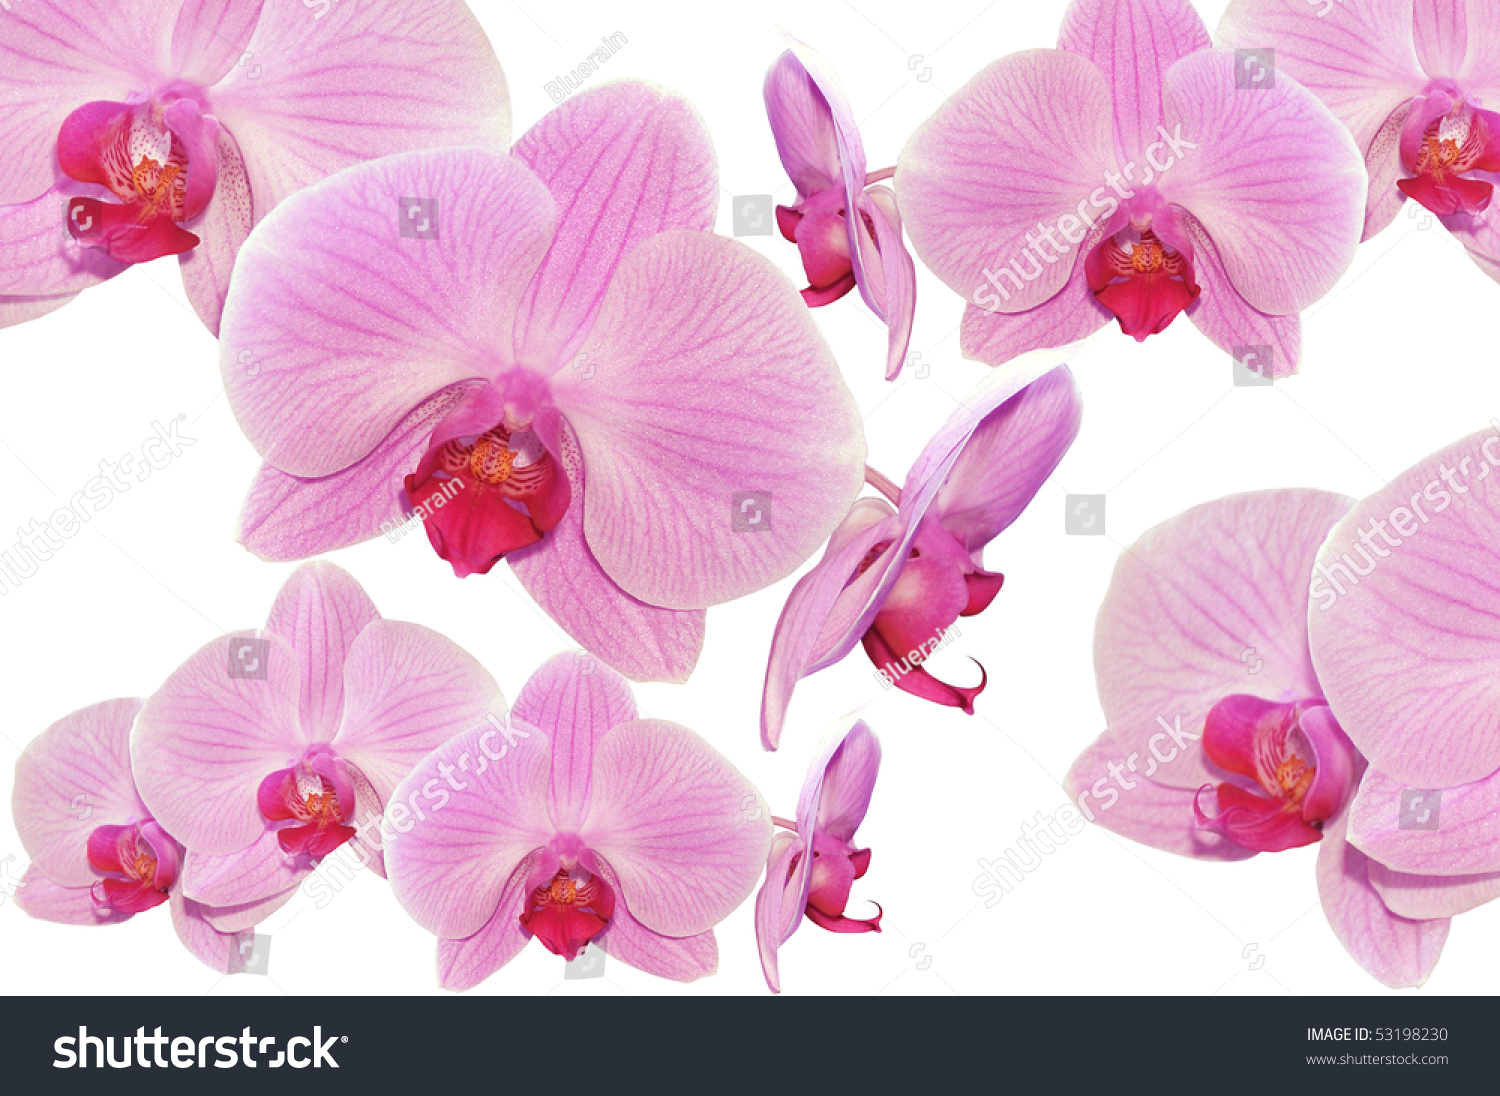 Floral Design Pink Orchids Flowers Isolated Stock Photo Edit Now